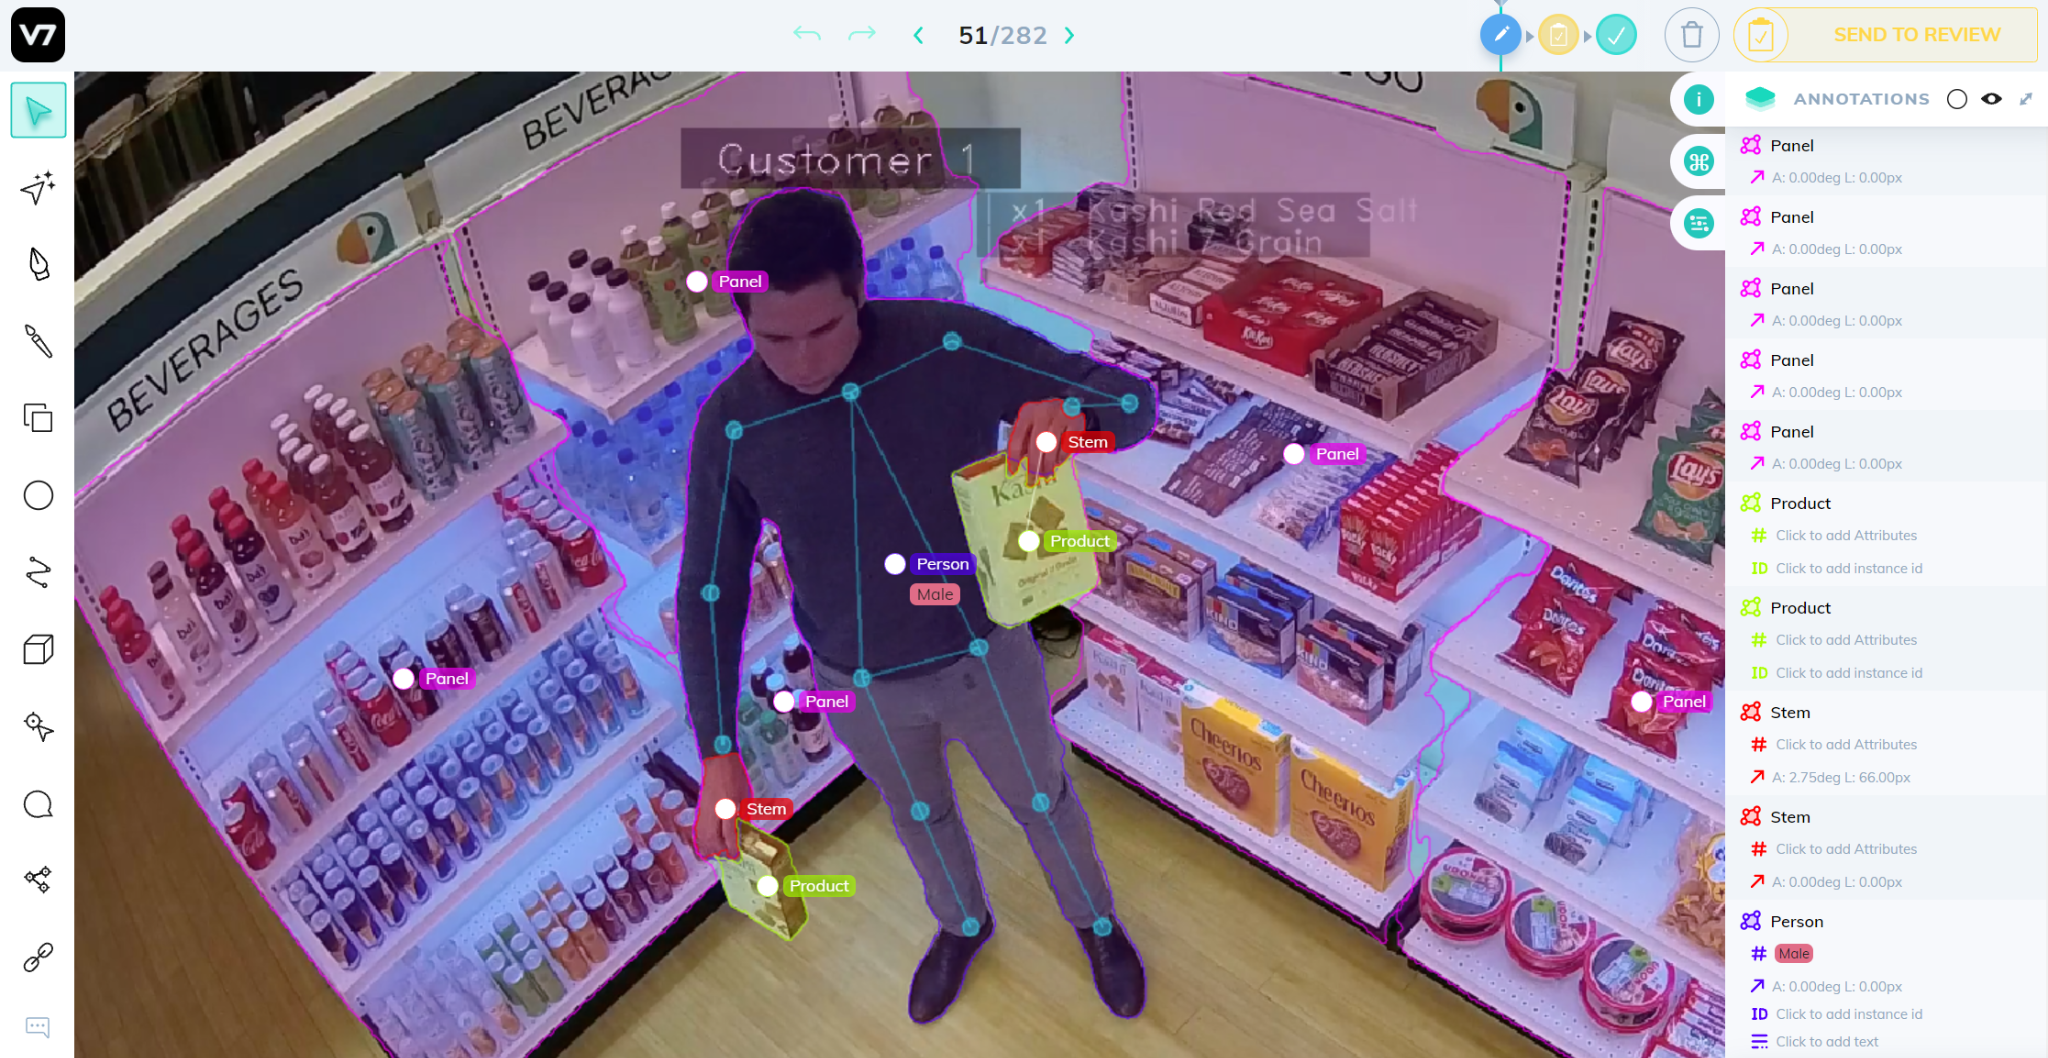 Computer-vision powered cashireless checkout experience using CCTV footage.